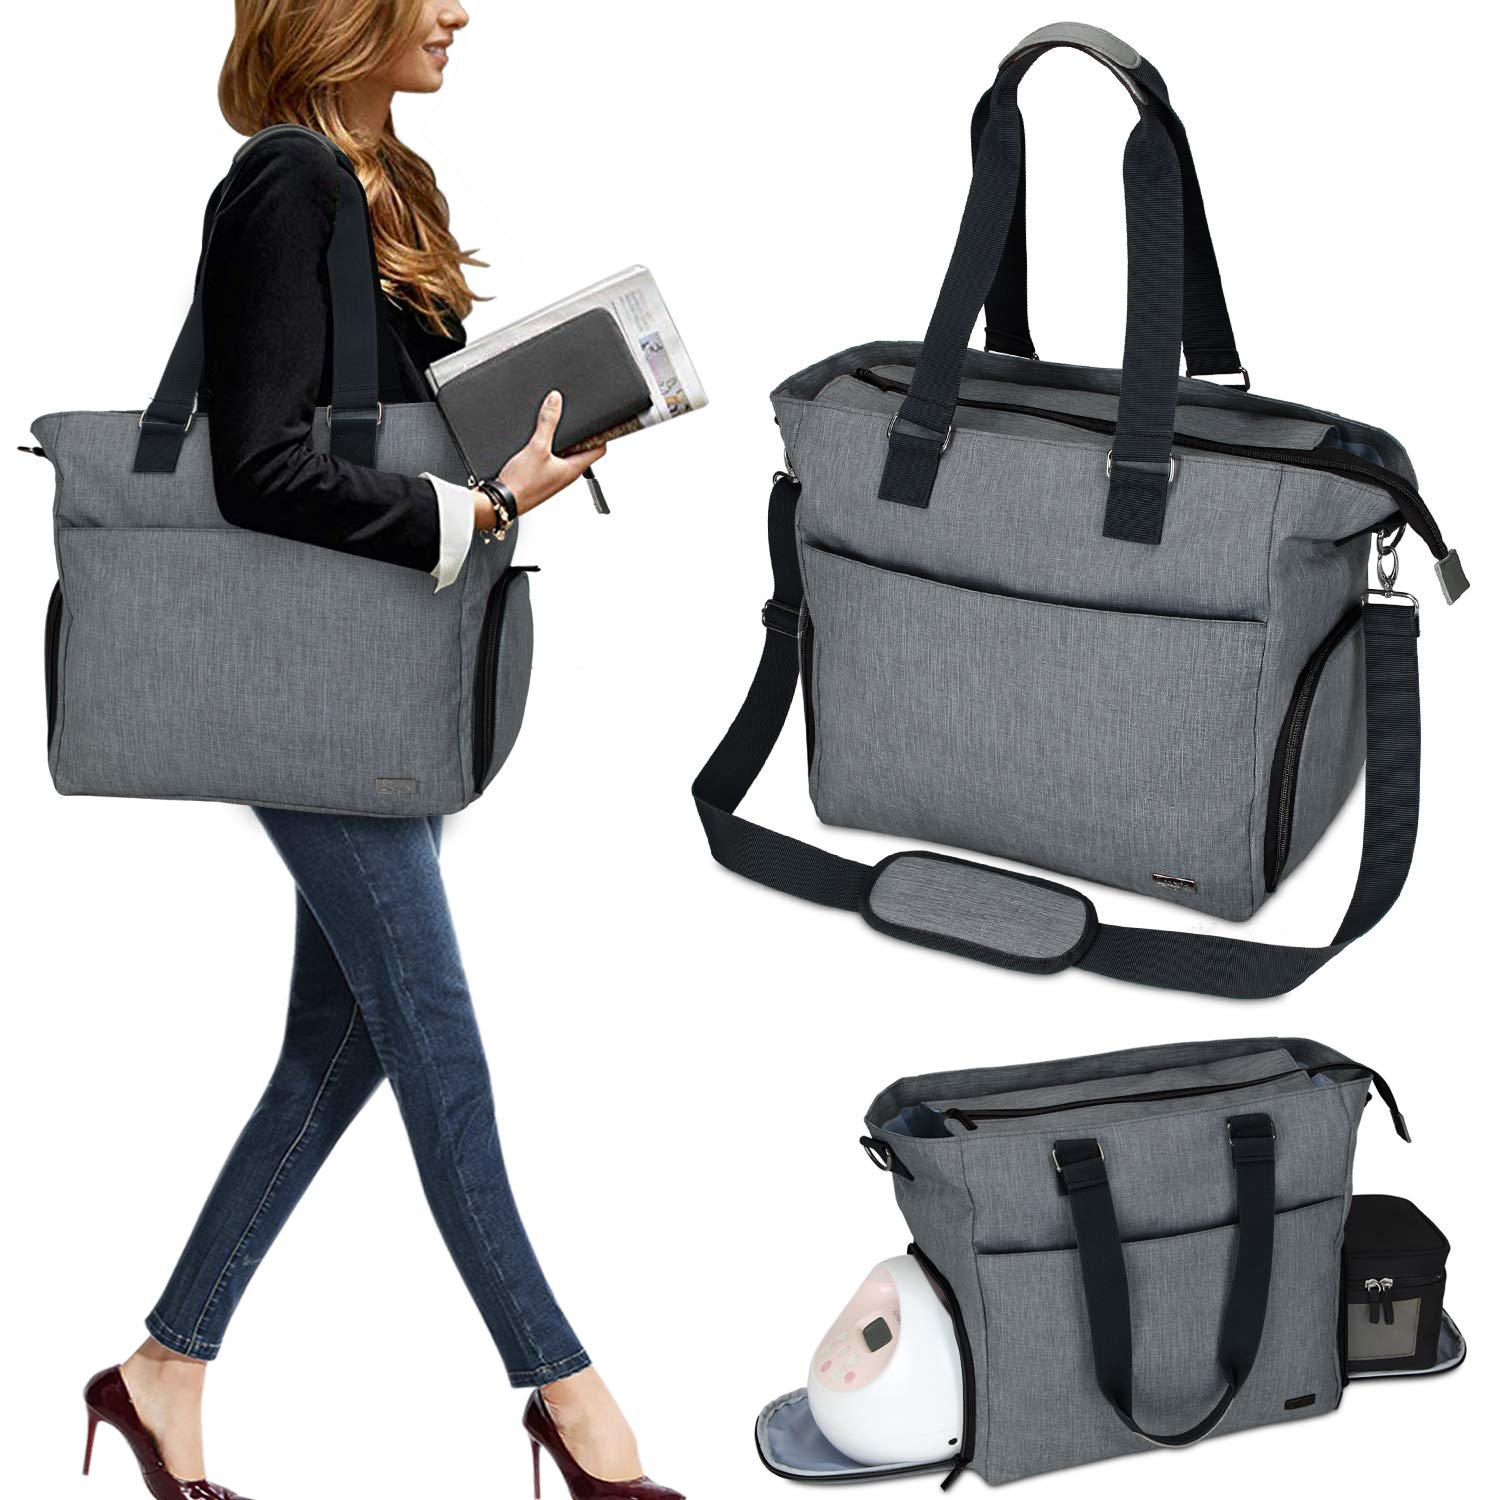 Luxja Breast Pump Tote with Pockets for Laptop and Cooler Bag, Breast Pump Bag for Working Mothers (Fits Most Major Breast Pump), Dark Gray